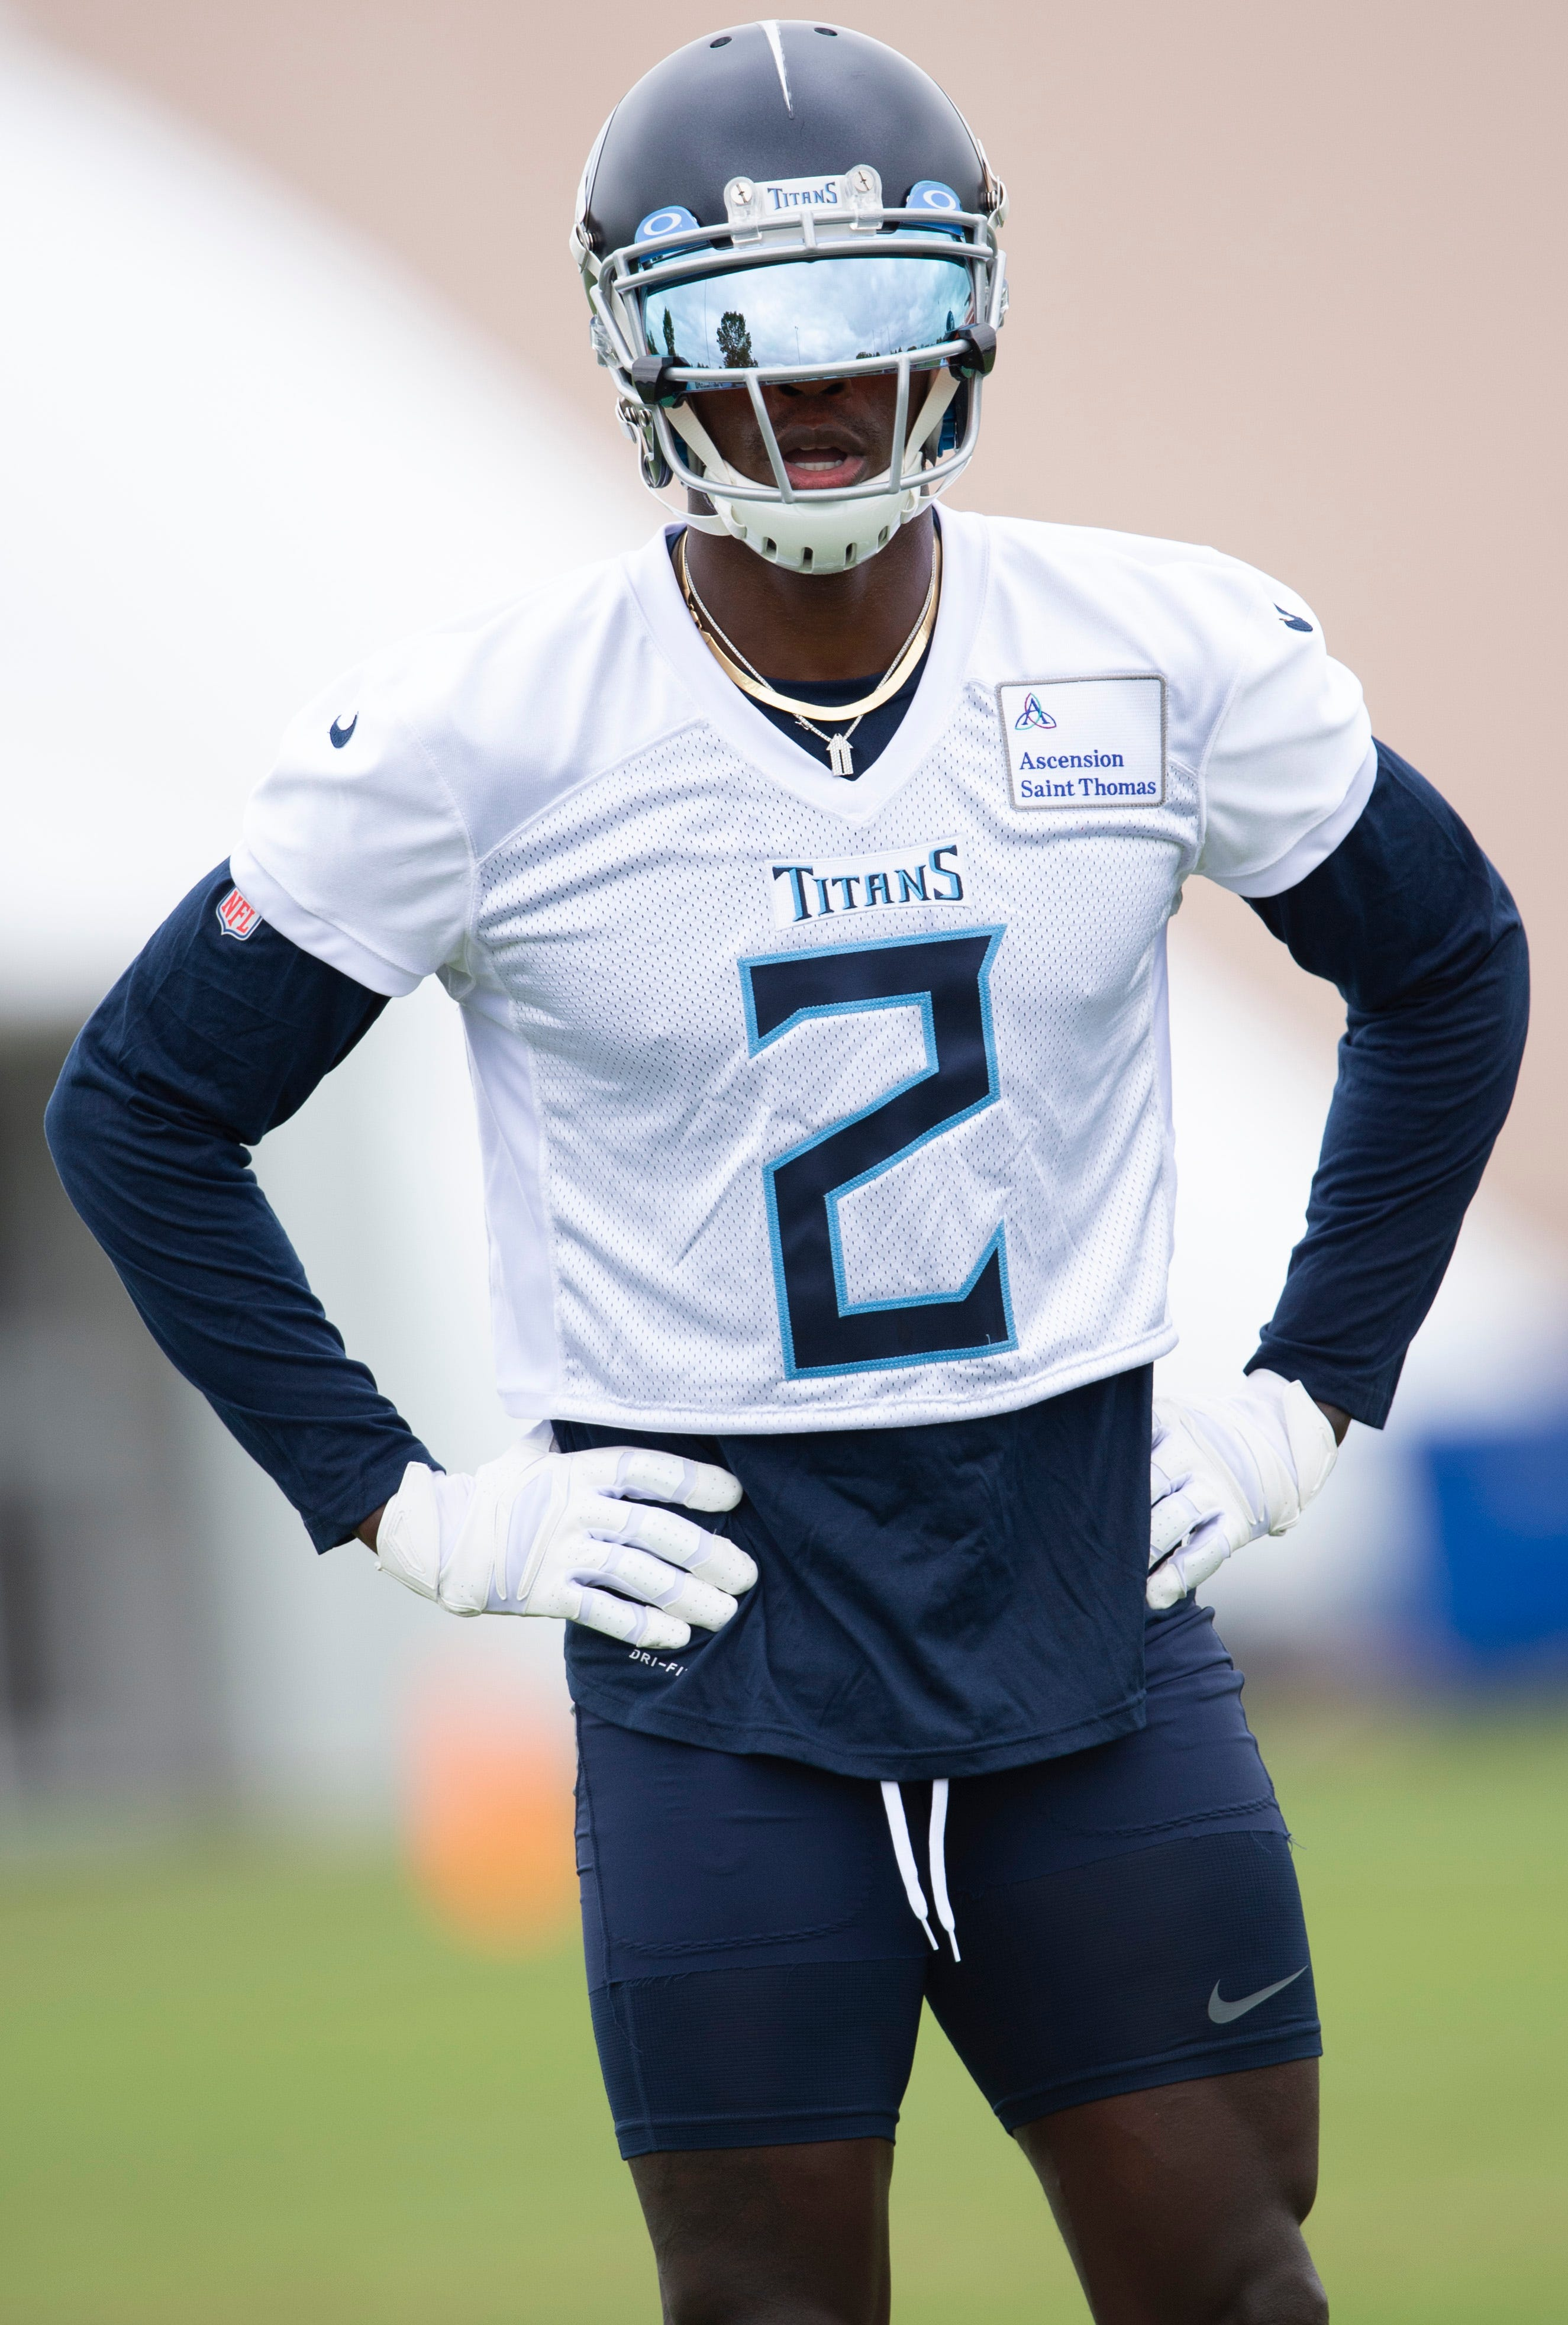 Julio Jones explains why he chose new number after being traded to Titans